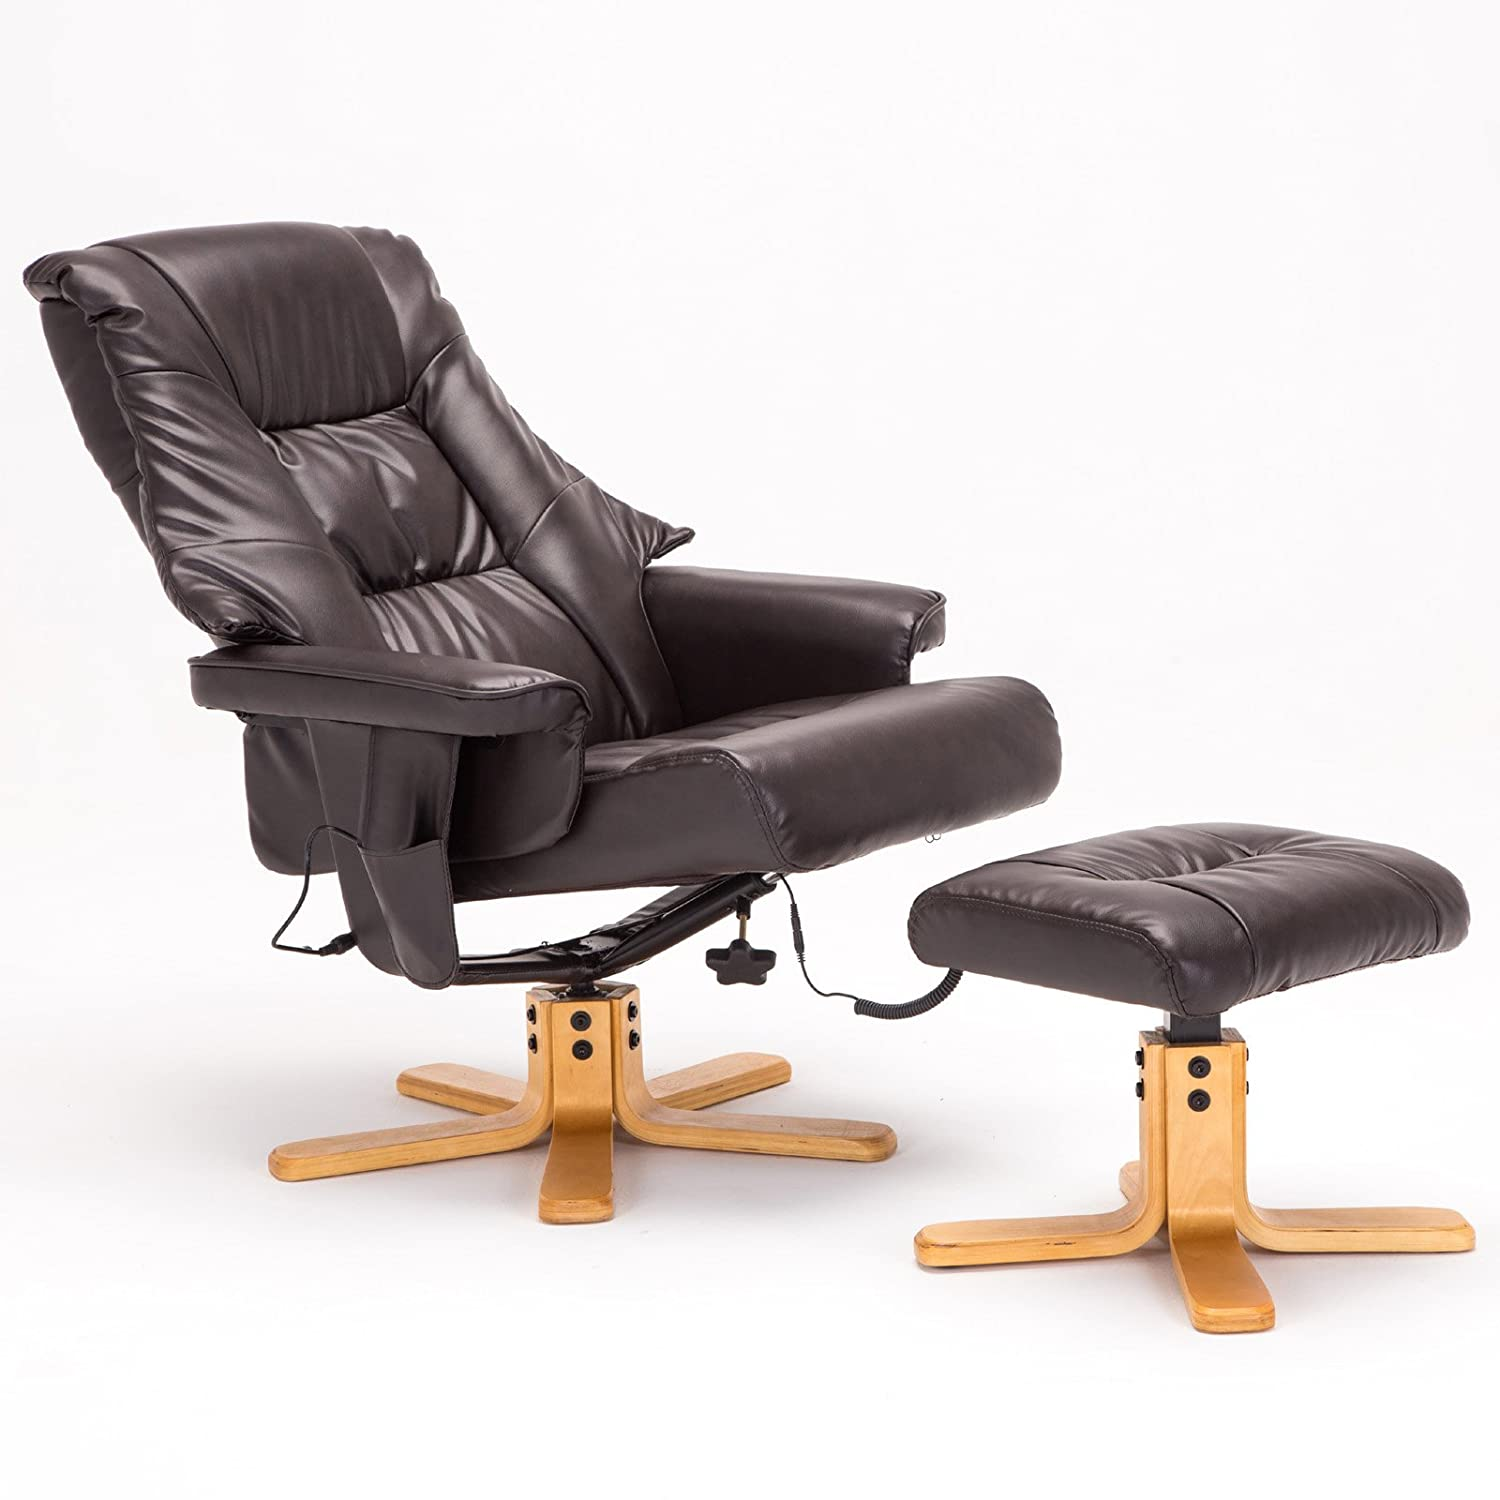 Amazon.com SGS Leather Massage Recliner Chair with Ottoman set Brown Kitchen u0026 Dining  sc 1 st  Amazon.com & Amazon.com: SGS Leather Massage Recliner Chair with Ottoman set ... islam-shia.org